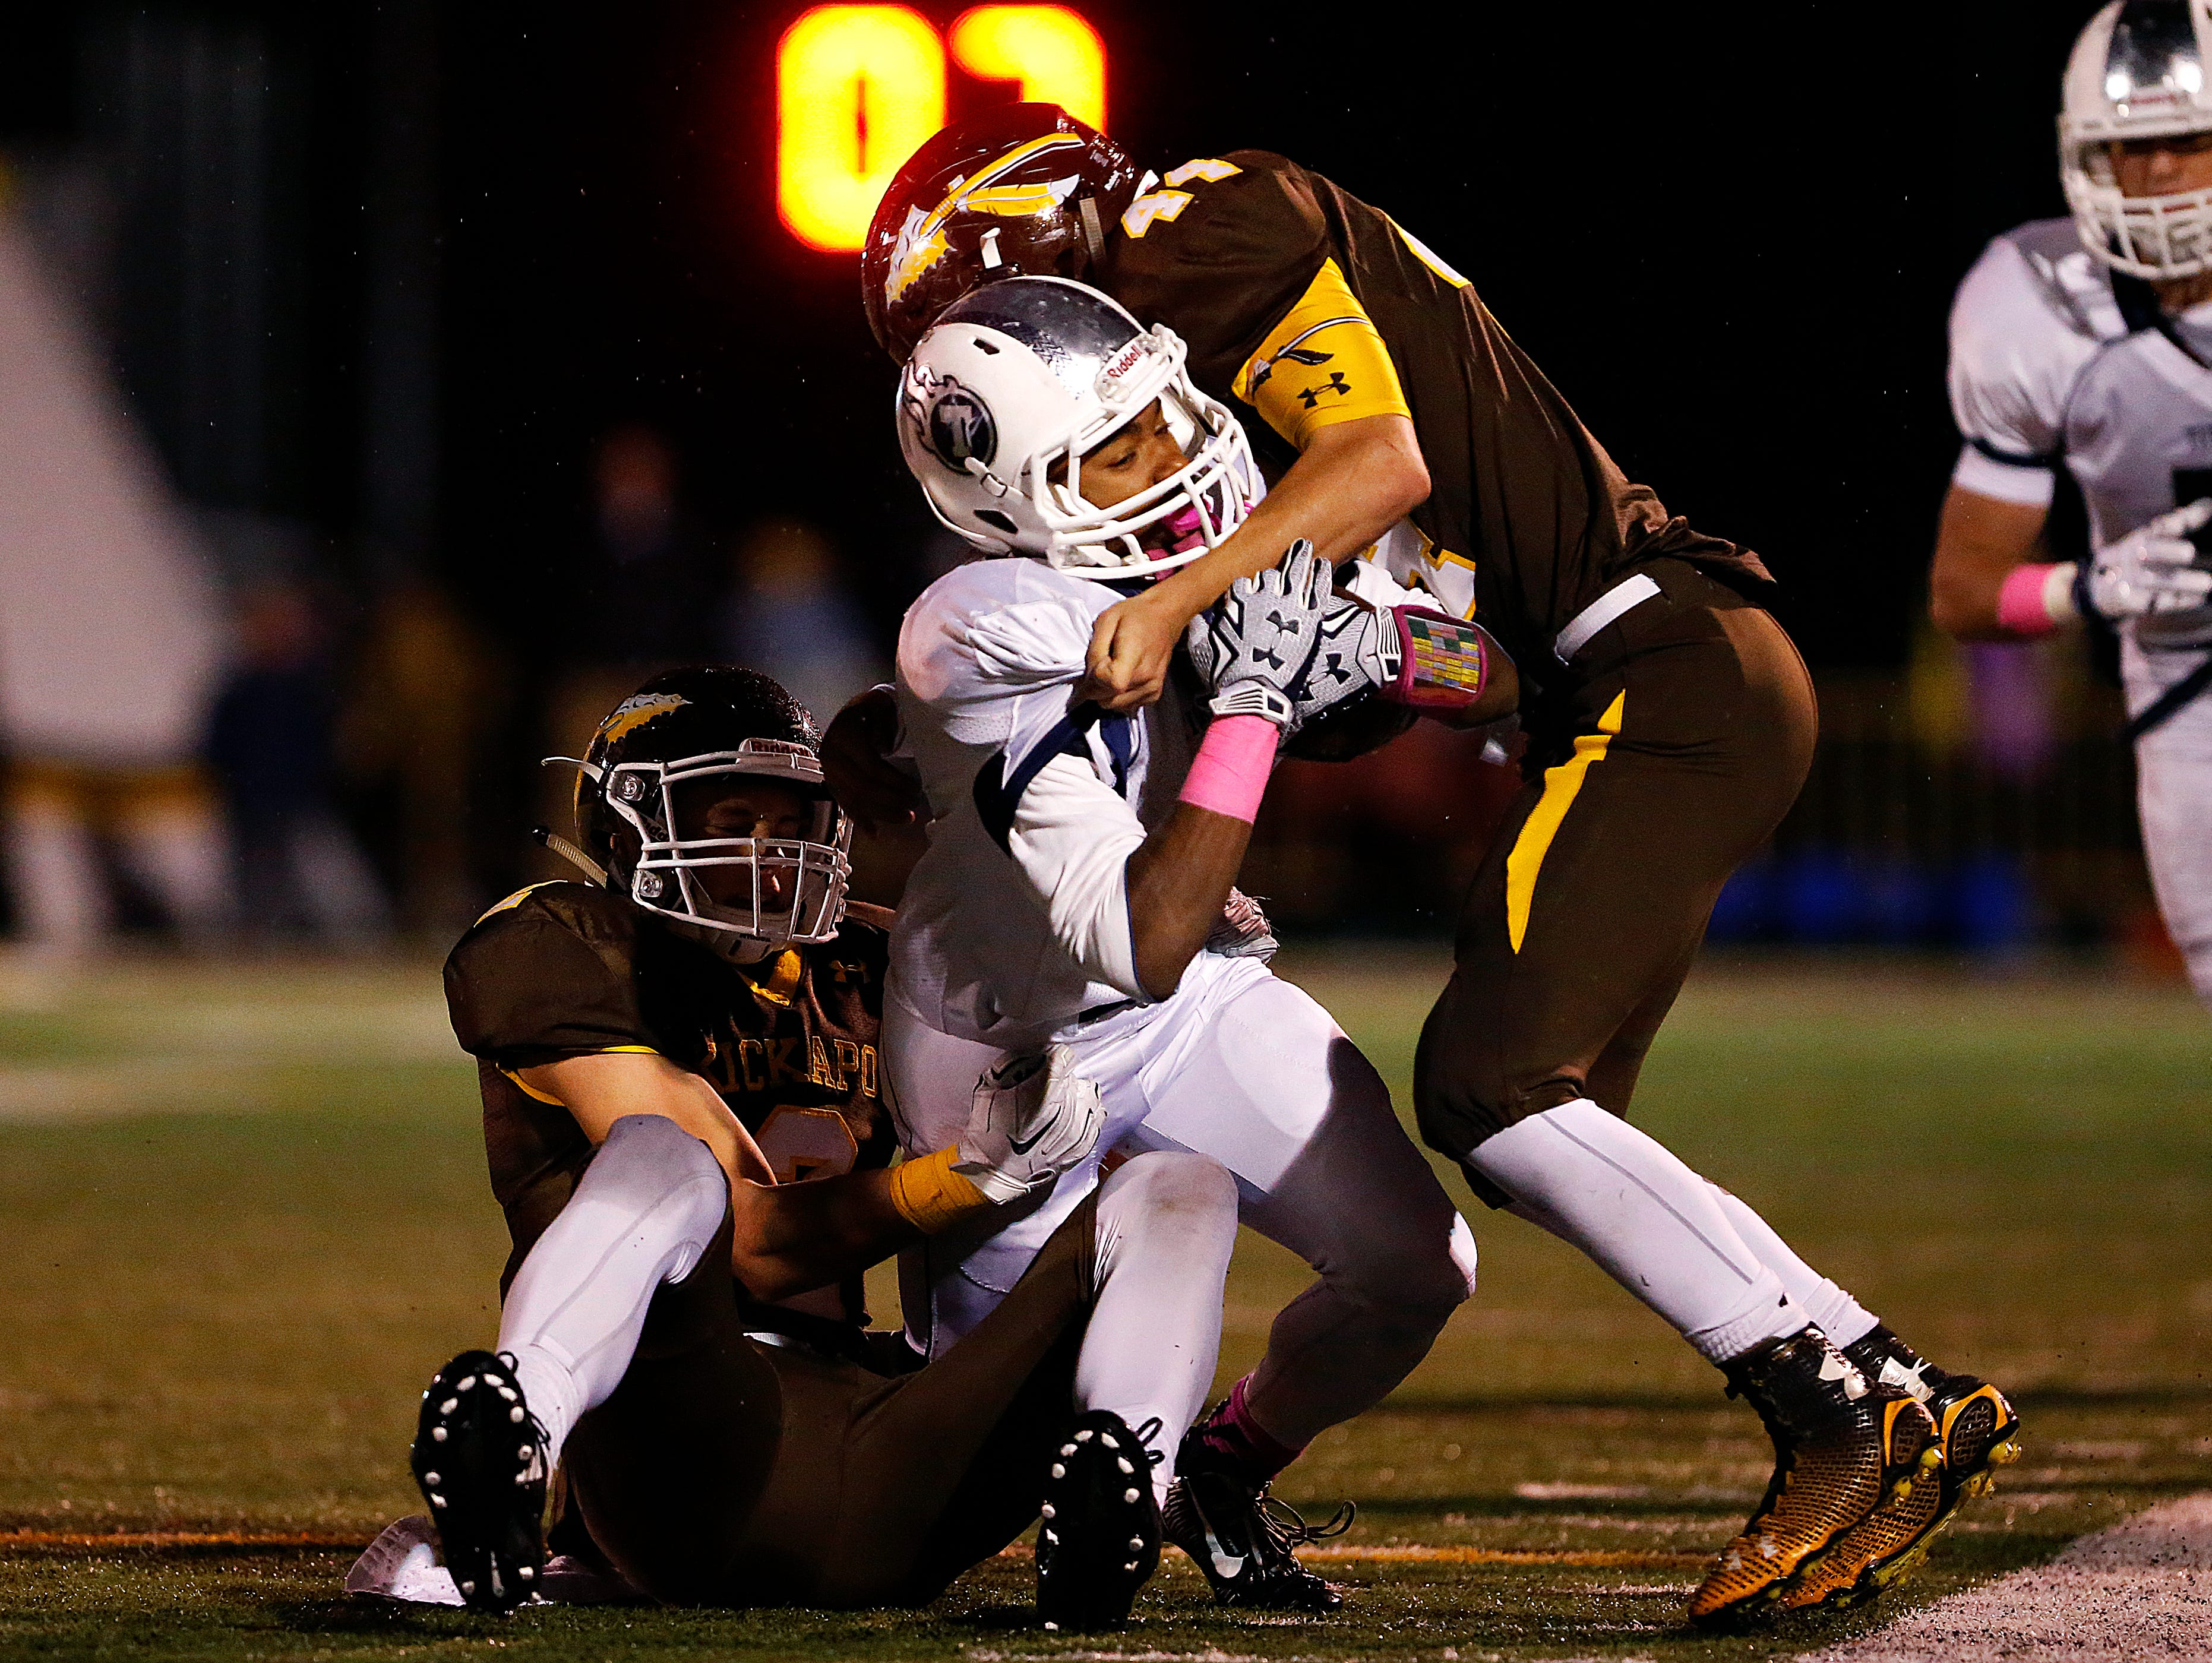 Lee's Summit West High School wide receiver Mario Goodrich (4) is tackled by Chiefs defenders Travis Vokolek (2) and Tre Woodring (44) during second quarter action of the Titans' game against Lee's Summit West High School at Pottenger Stadium in Springfield, Mo. on Oct. 30, 2015. Kickapoo won the game 26-7.